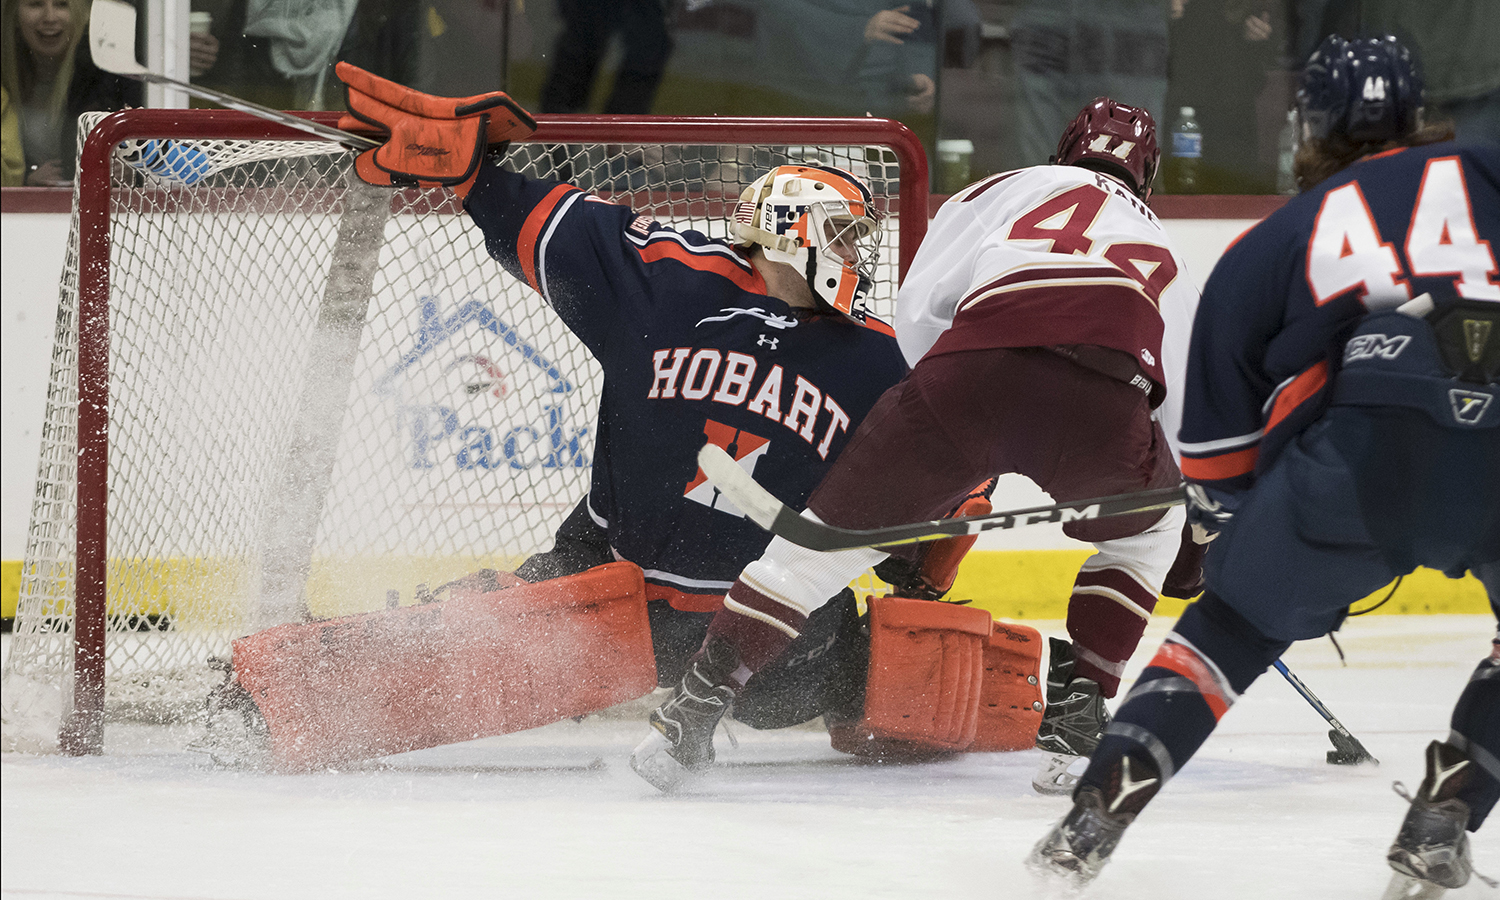 Frank Oplinger '18 makes a save during Hobart's 3-0 win over Norwich University during the 2018 New England Hockey Conference Tournament in Northfield, Vt.